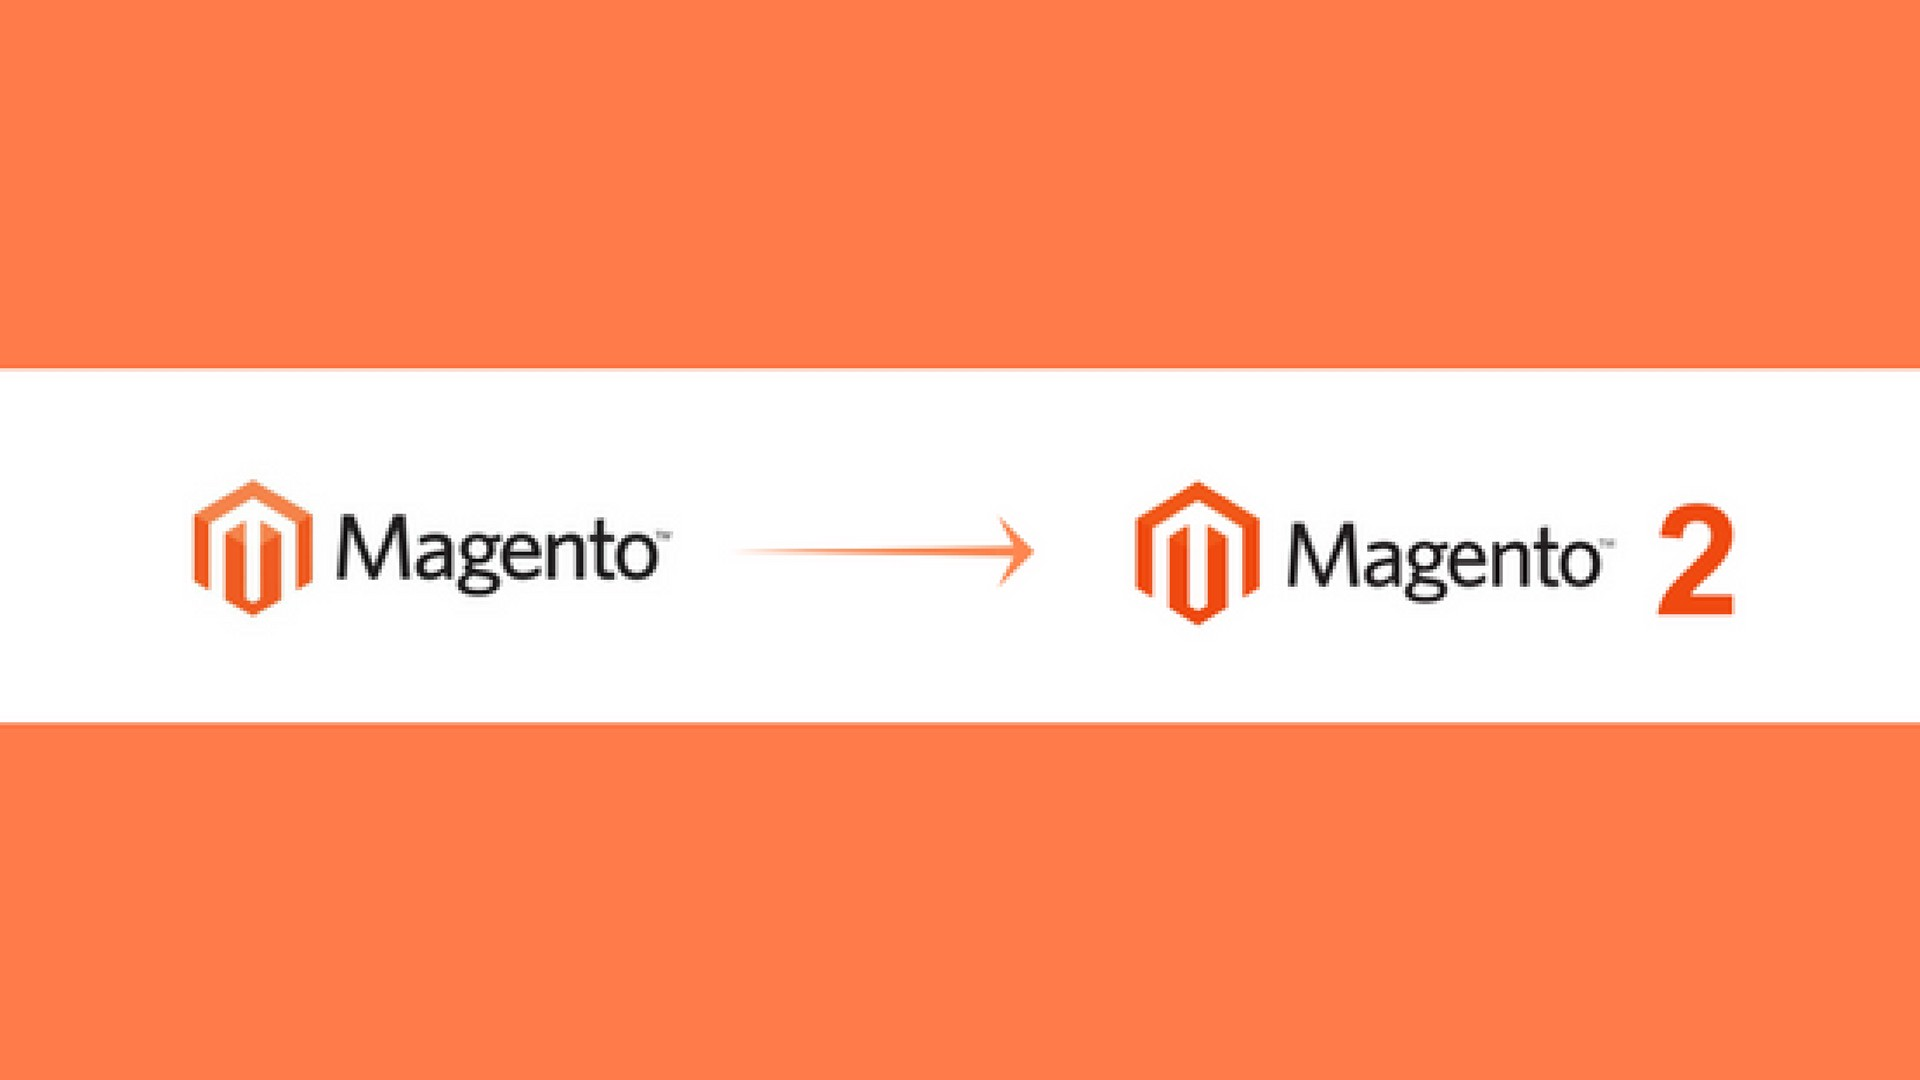 MIGRATE FROM MAGENTO 1 TO MAGENTO 2: STEPS TO FOLLOW